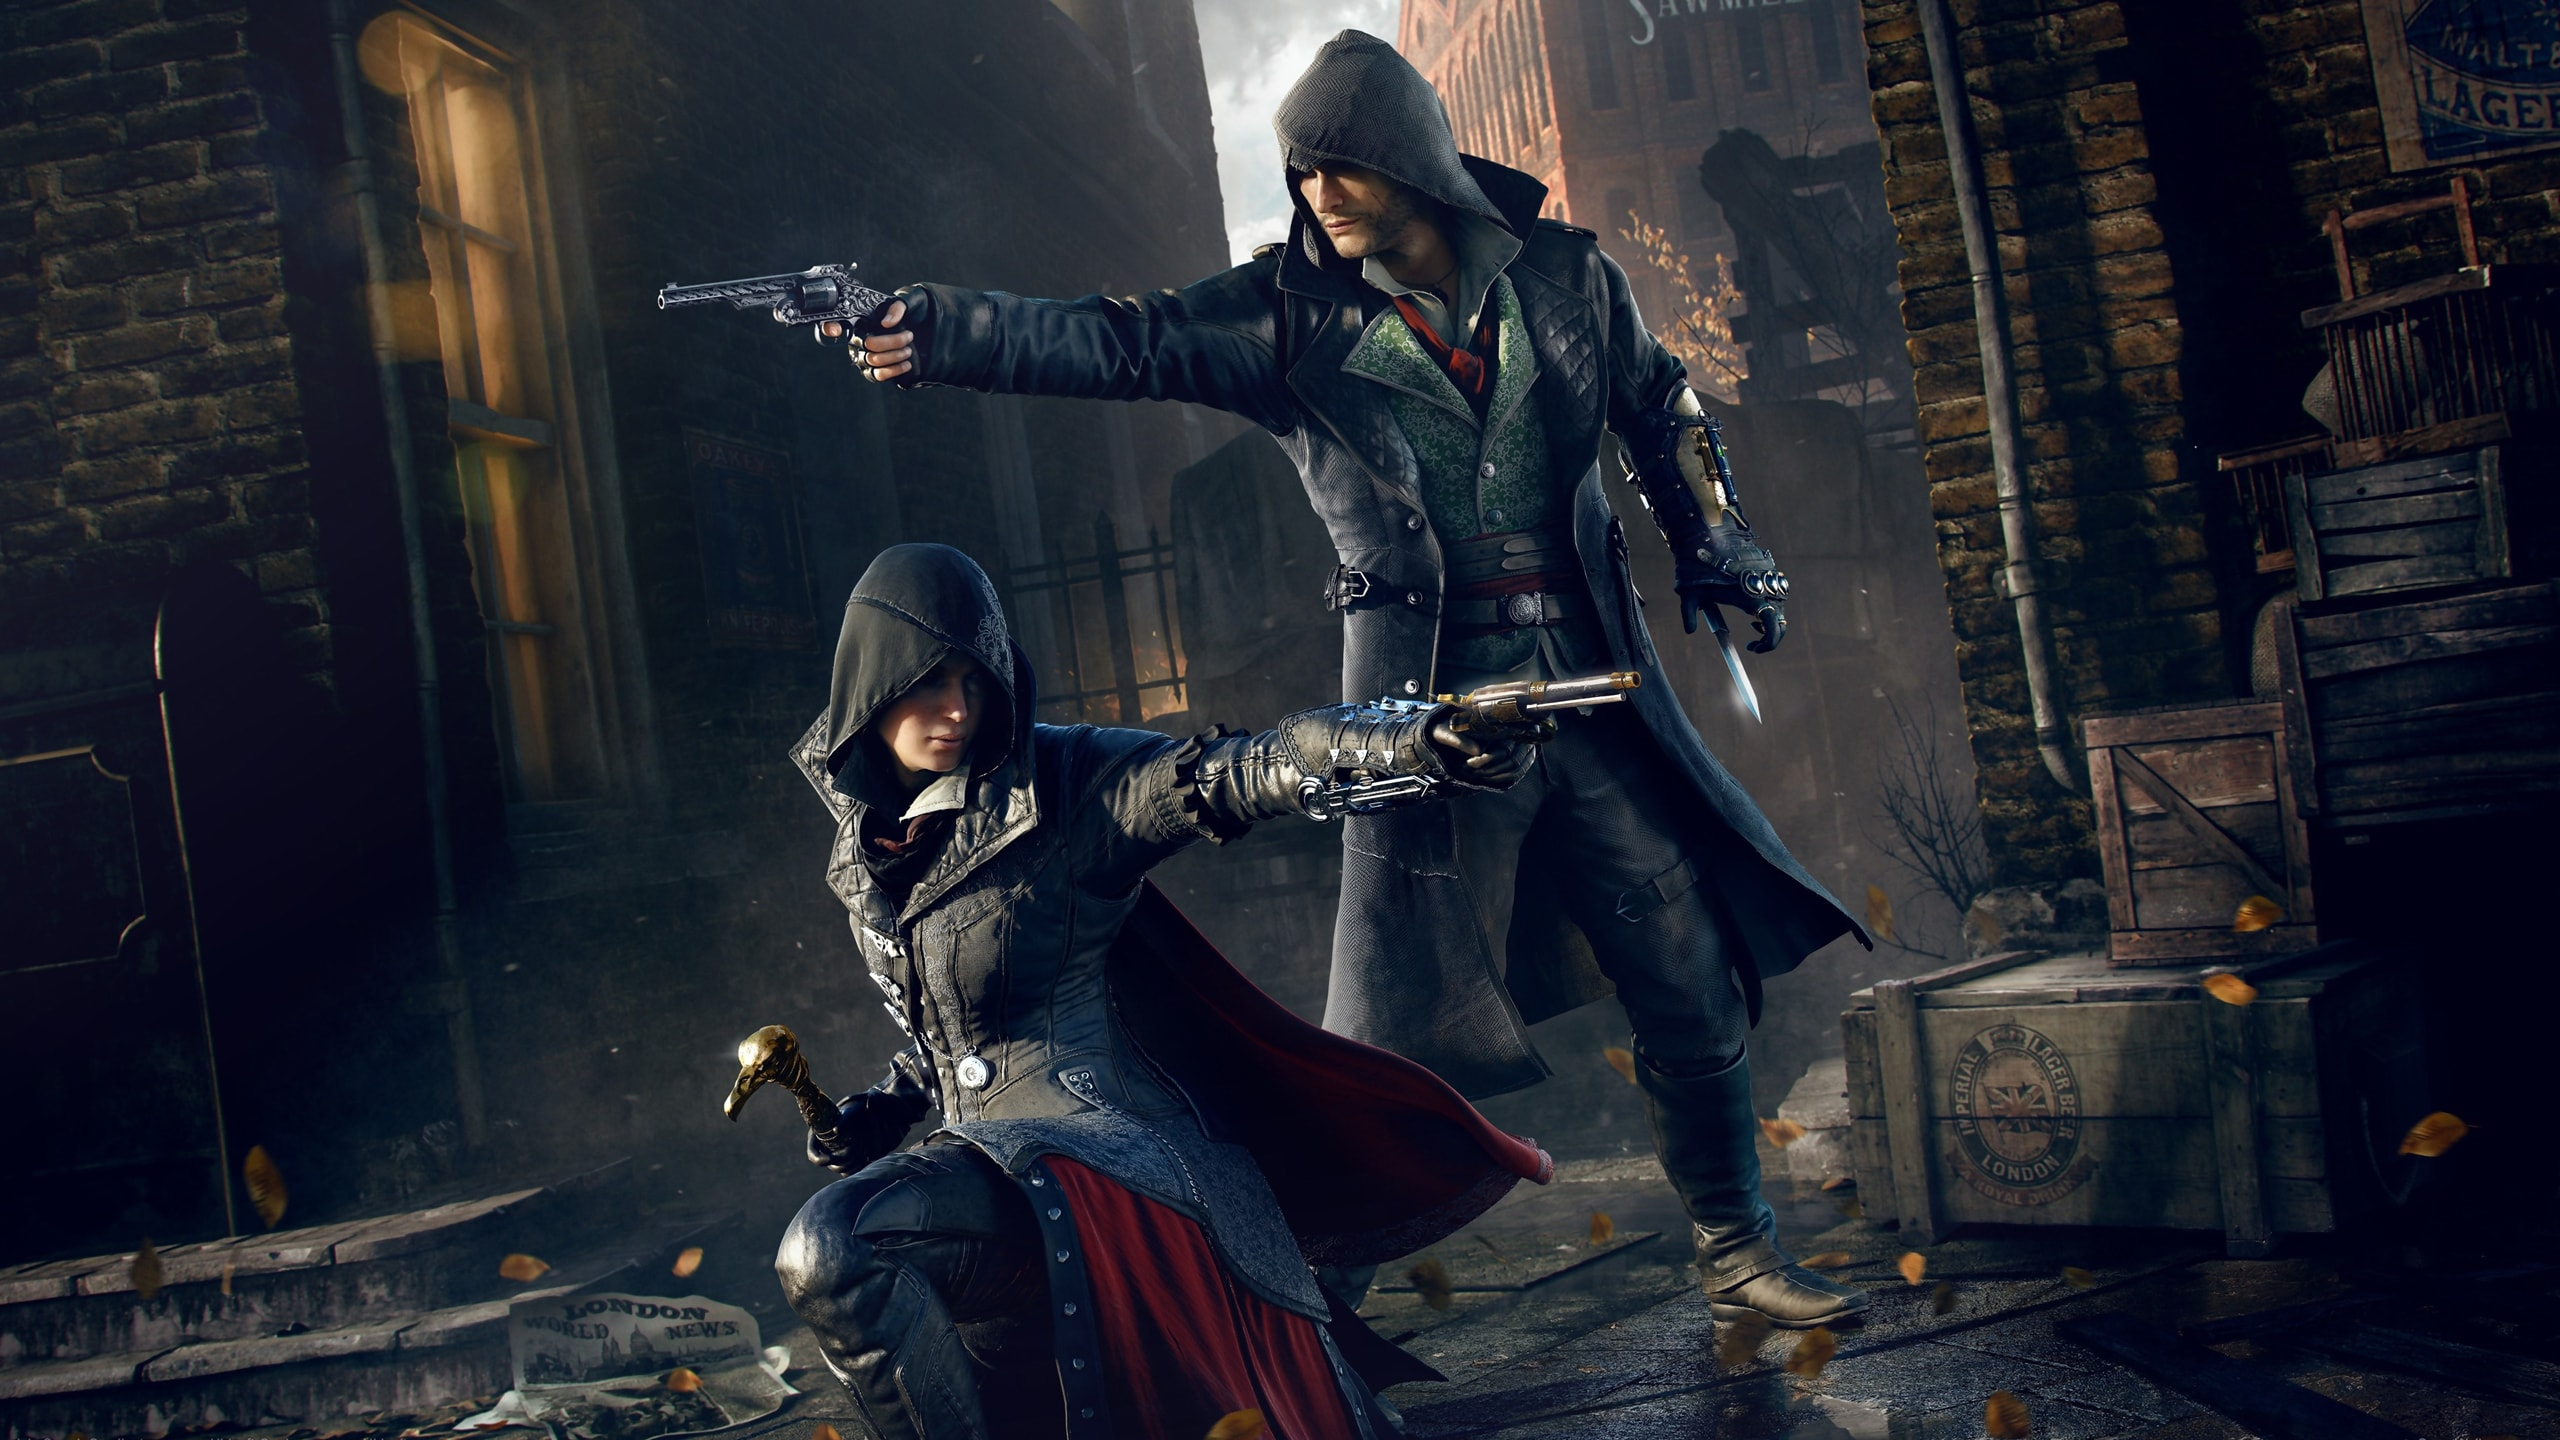 assassin's creed: syndicate hd desktop wallpapers | 7wallpapers